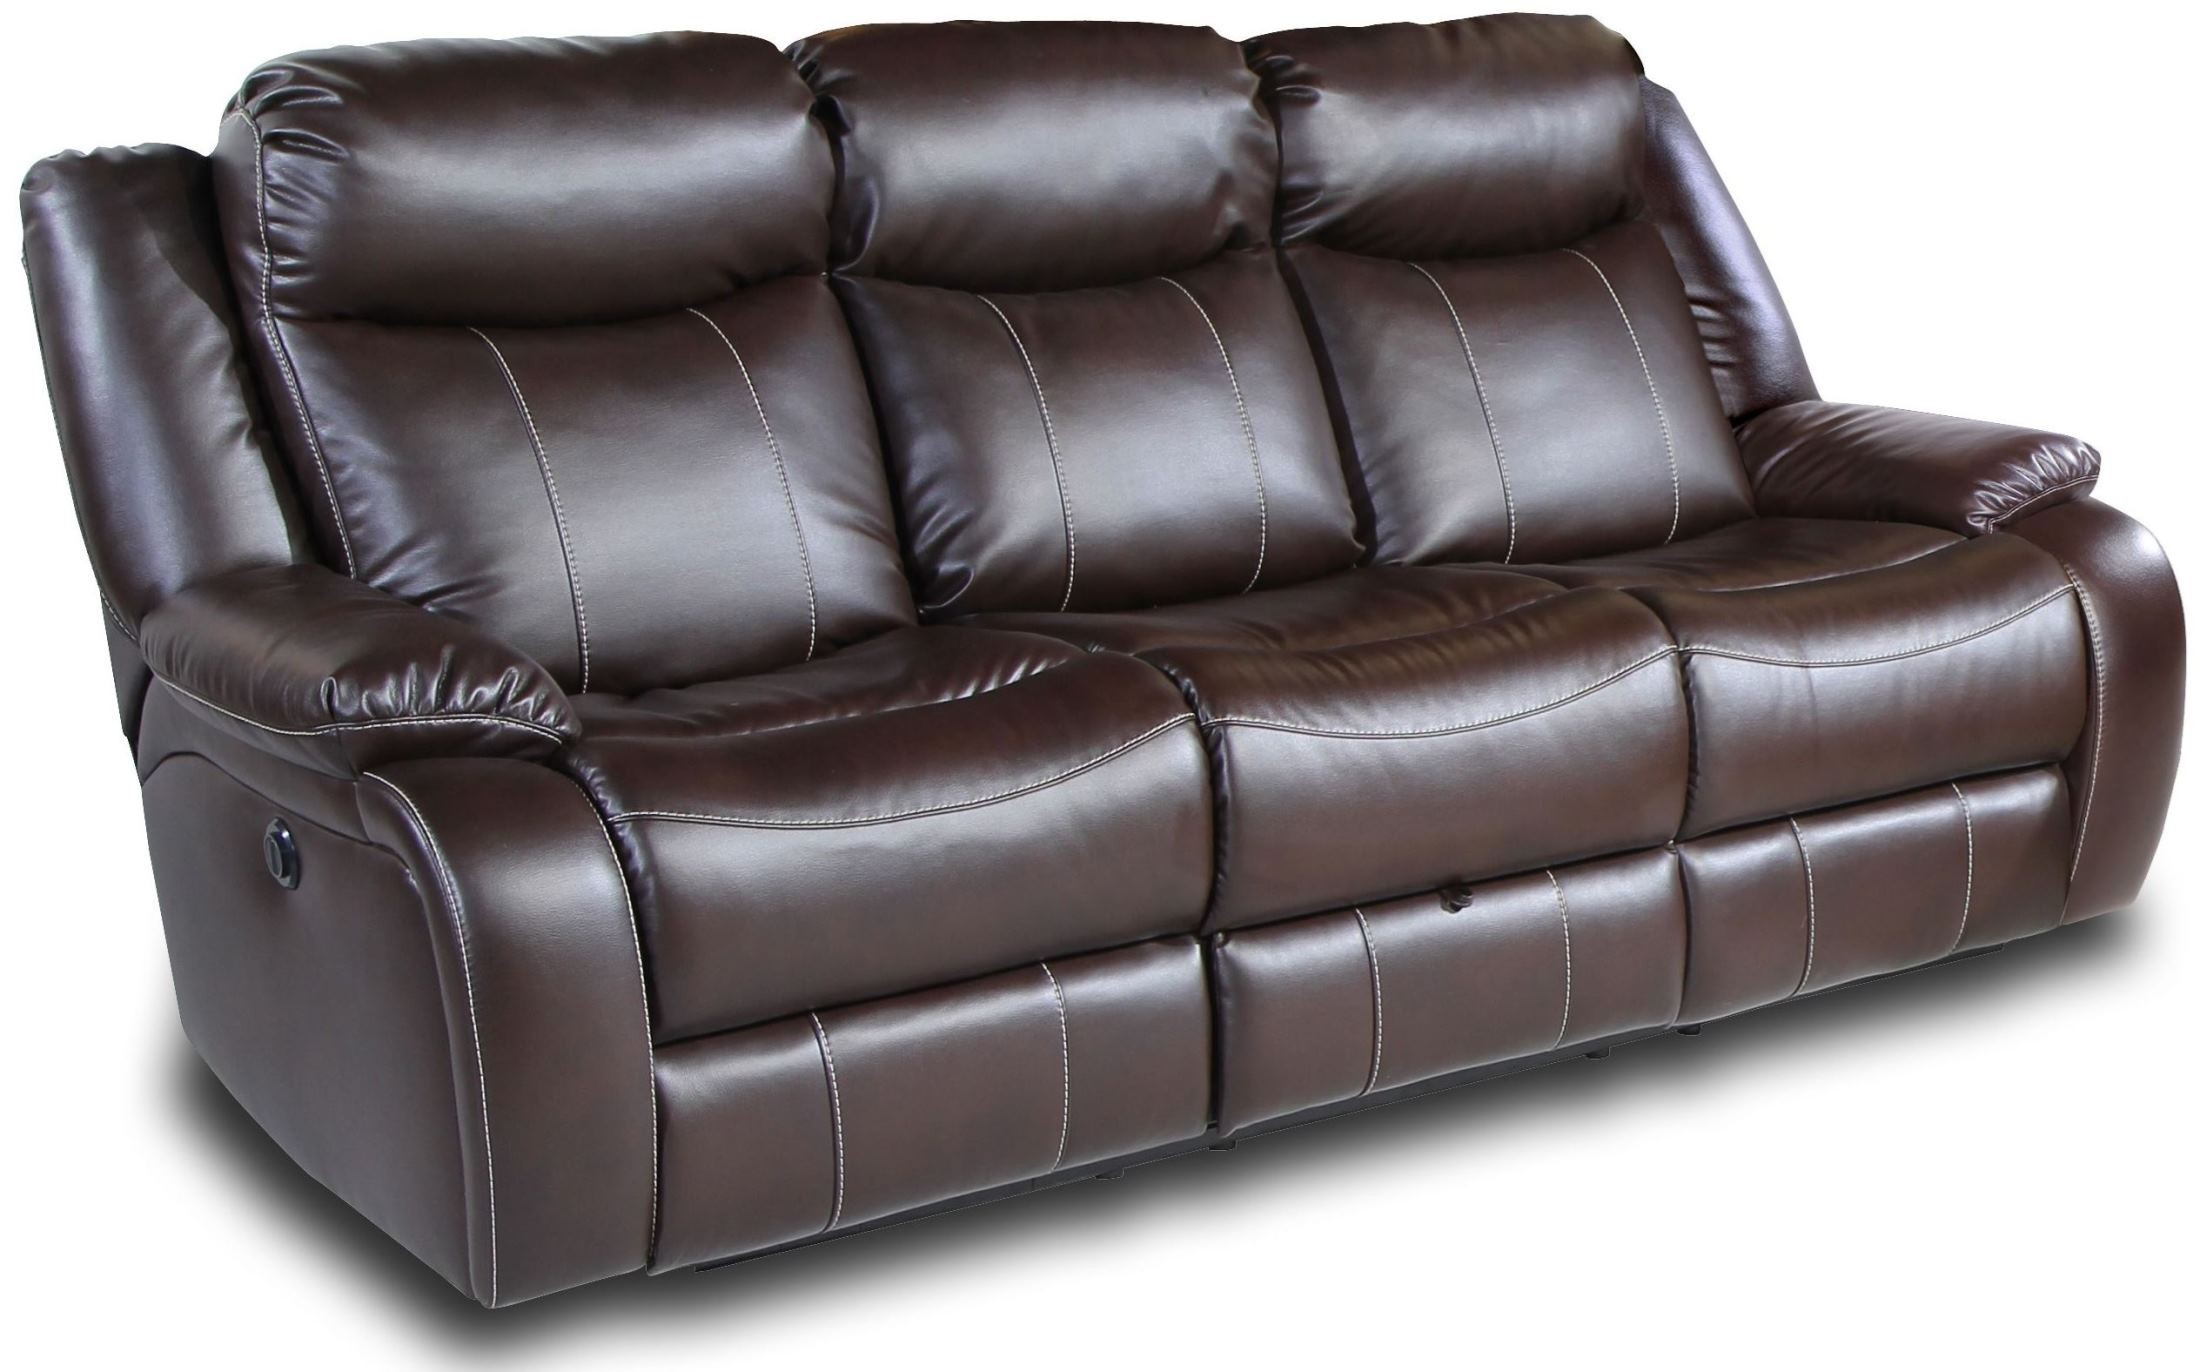 Genesis jamestown brown fabric power reclining sofa from for Brown fabric couch